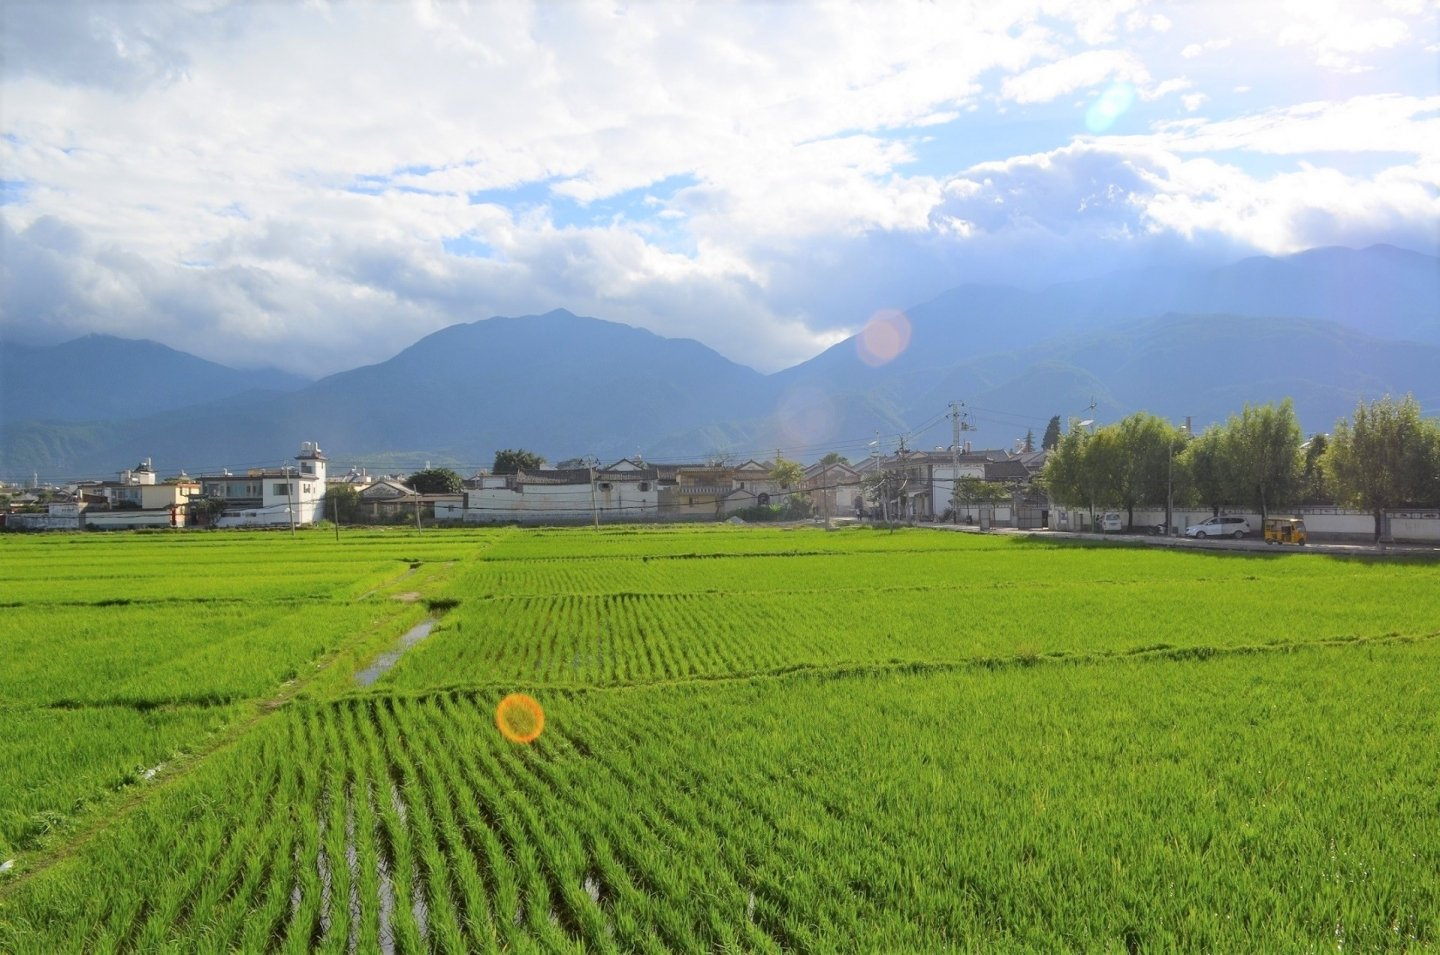 View from the Linden Centre. A rice field.